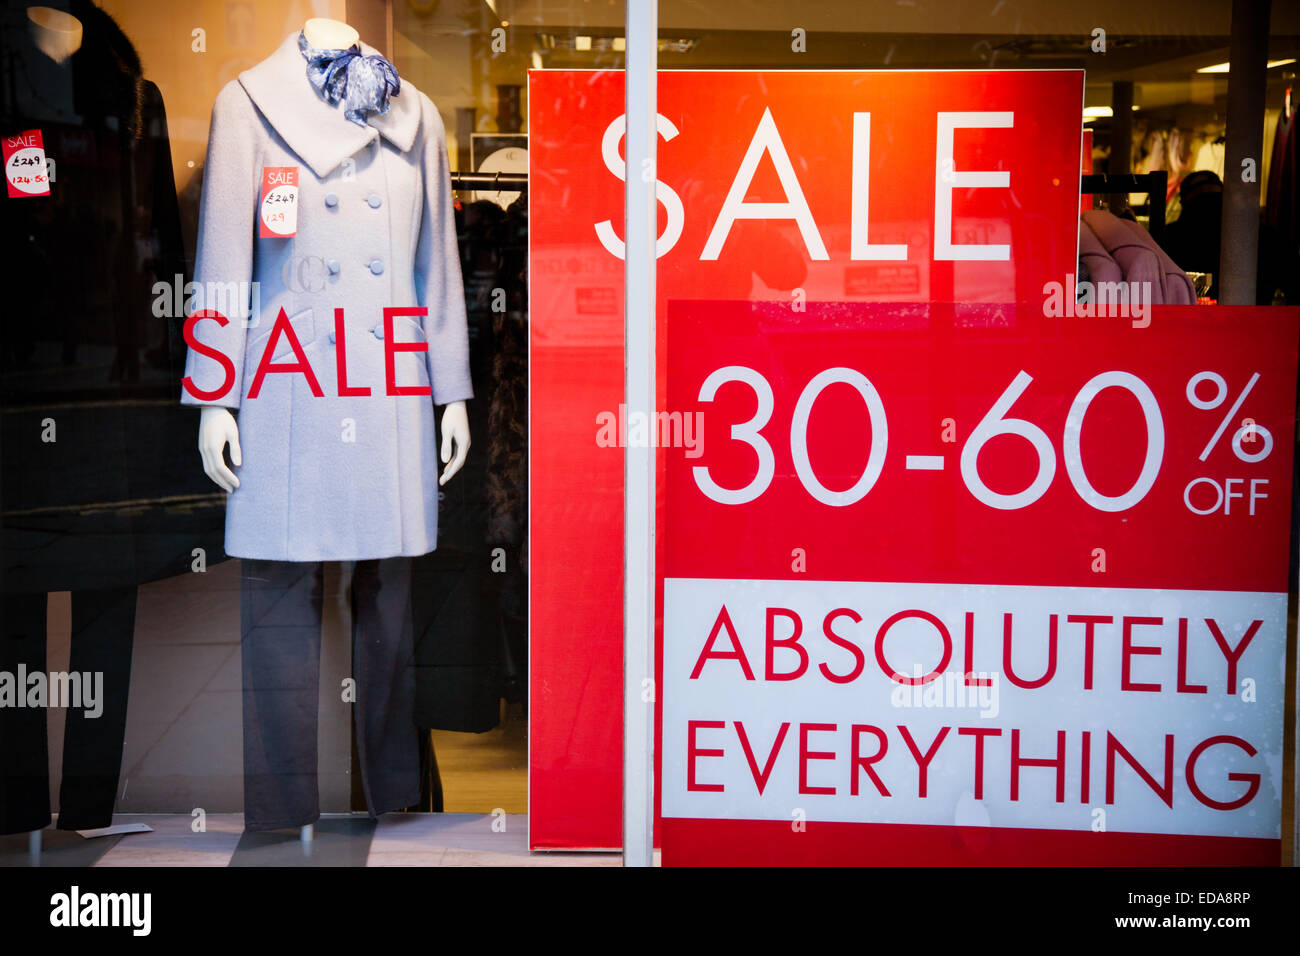 020d5422a4 Large sale sign posters in a shop window showing clothes on sale ...